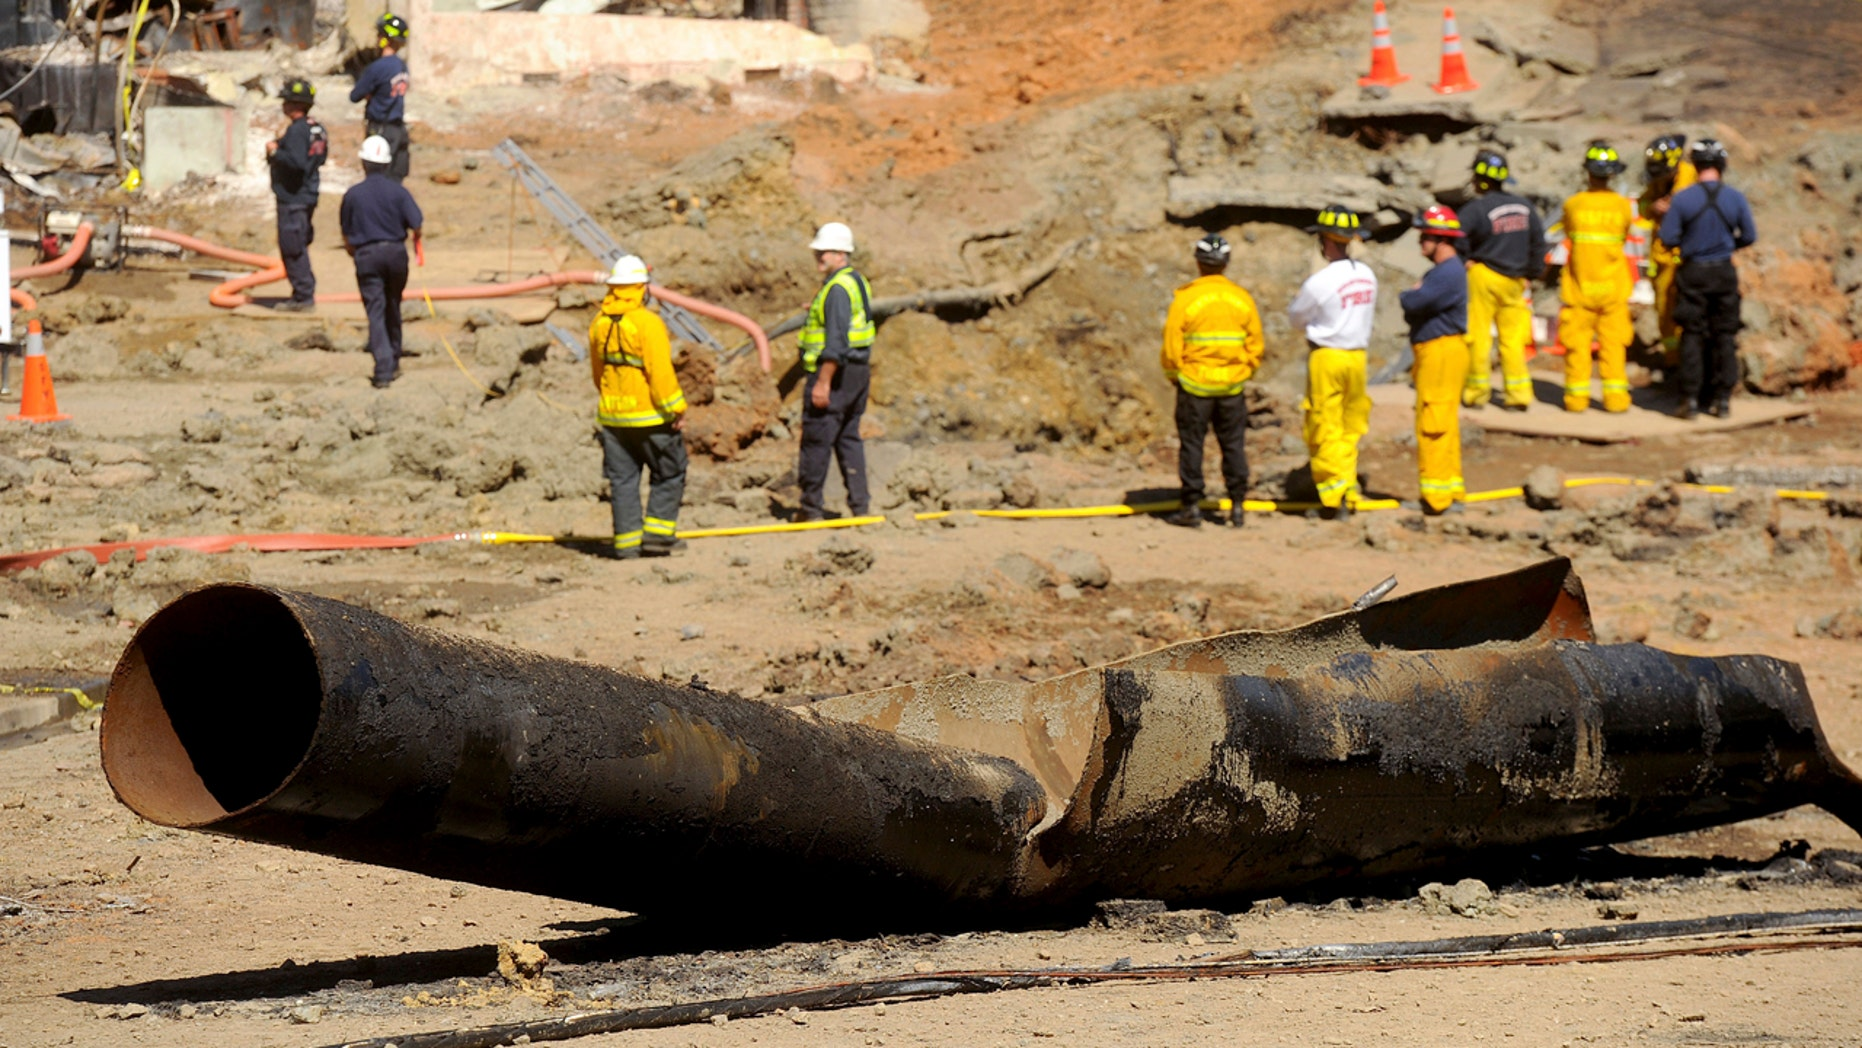 In this Sept. 11, 2010, file photo, a natural gas line lies broken on a San Bruno, Calif., road after a massive explosion. The California Public Utilities Commission said Friday, Dec. 14, 2018, that an investigation by its staff found Pacific Gas & Electric Co. lacked enough employees to fulfill requests to find and mark natural gas pipelines(AP Photo/Noah Berger, File)